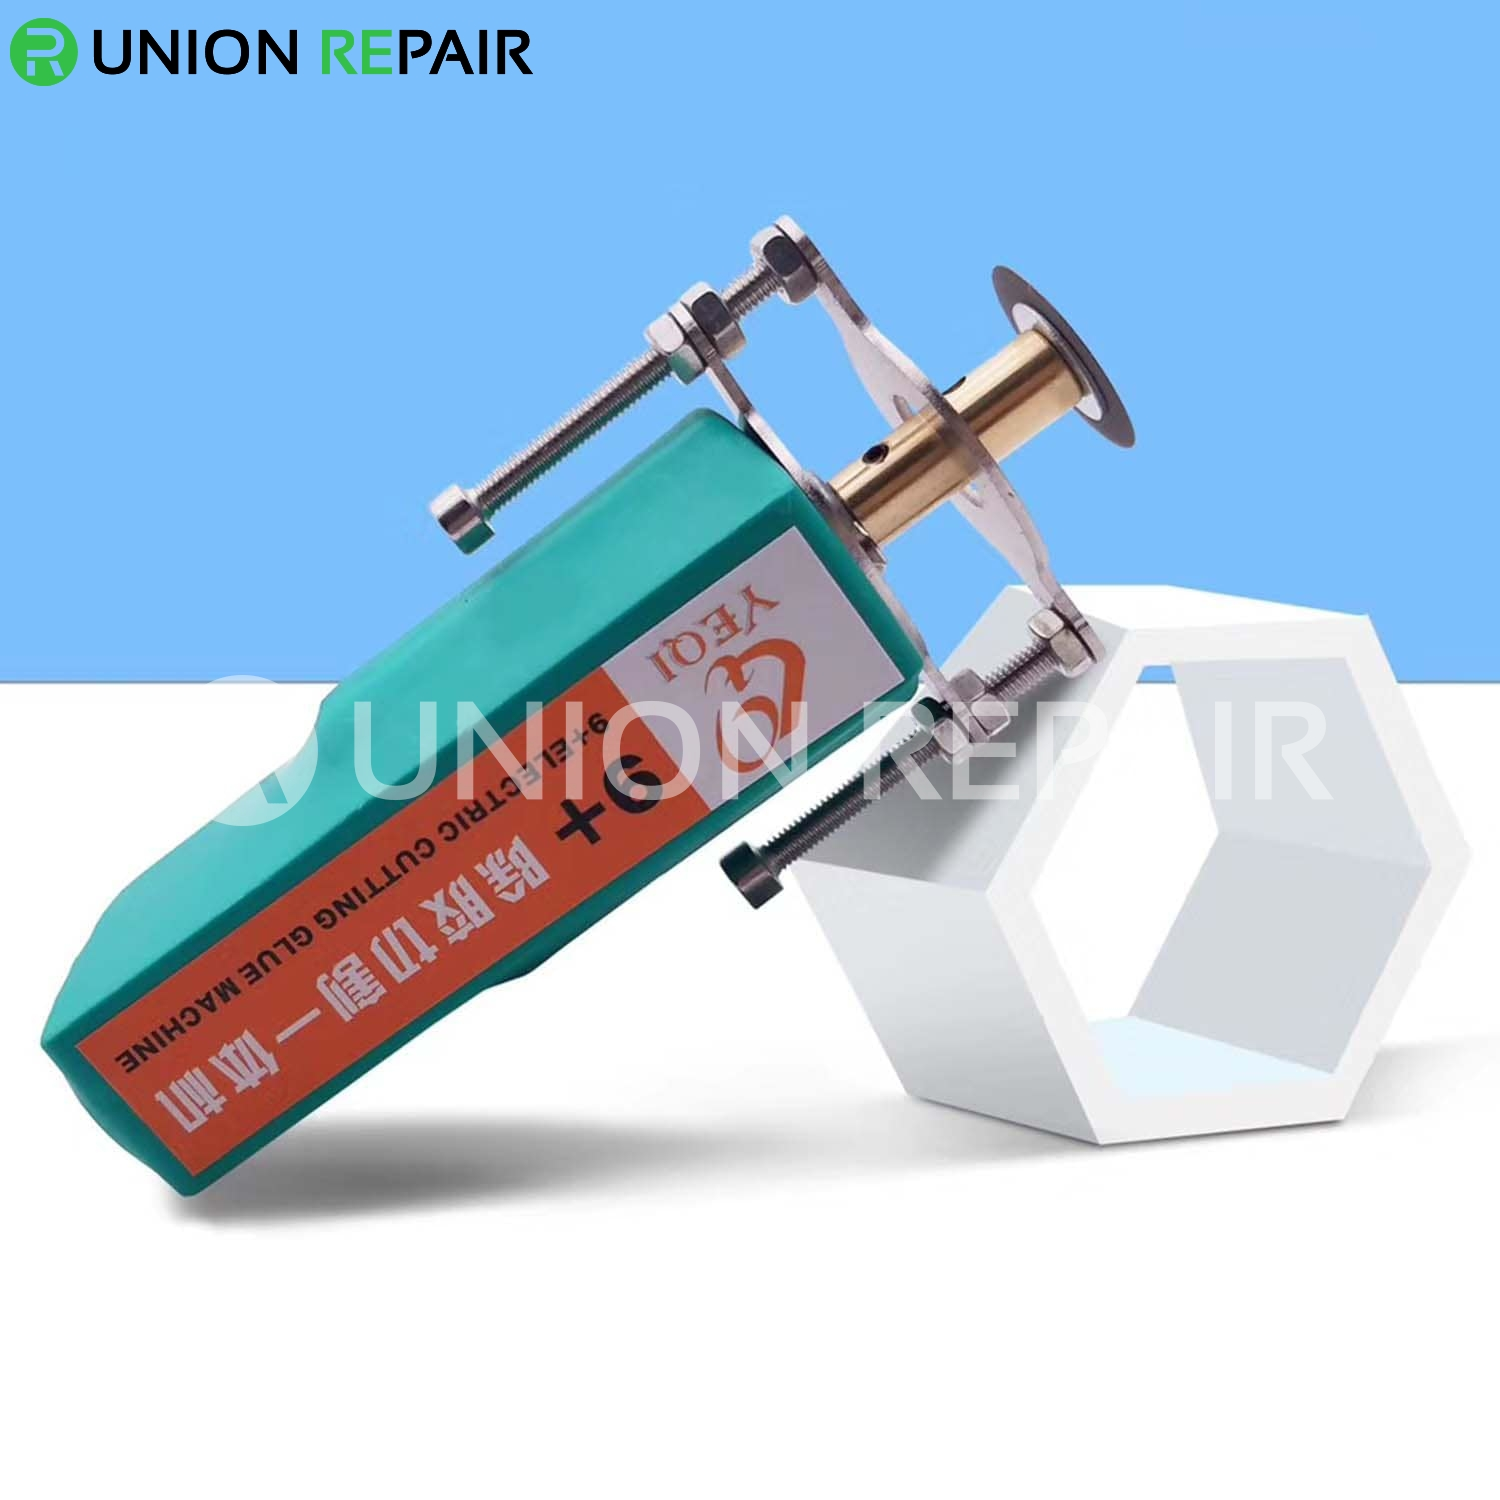 YeQi 9+ Ample Power Cutting Glue Remover Machine